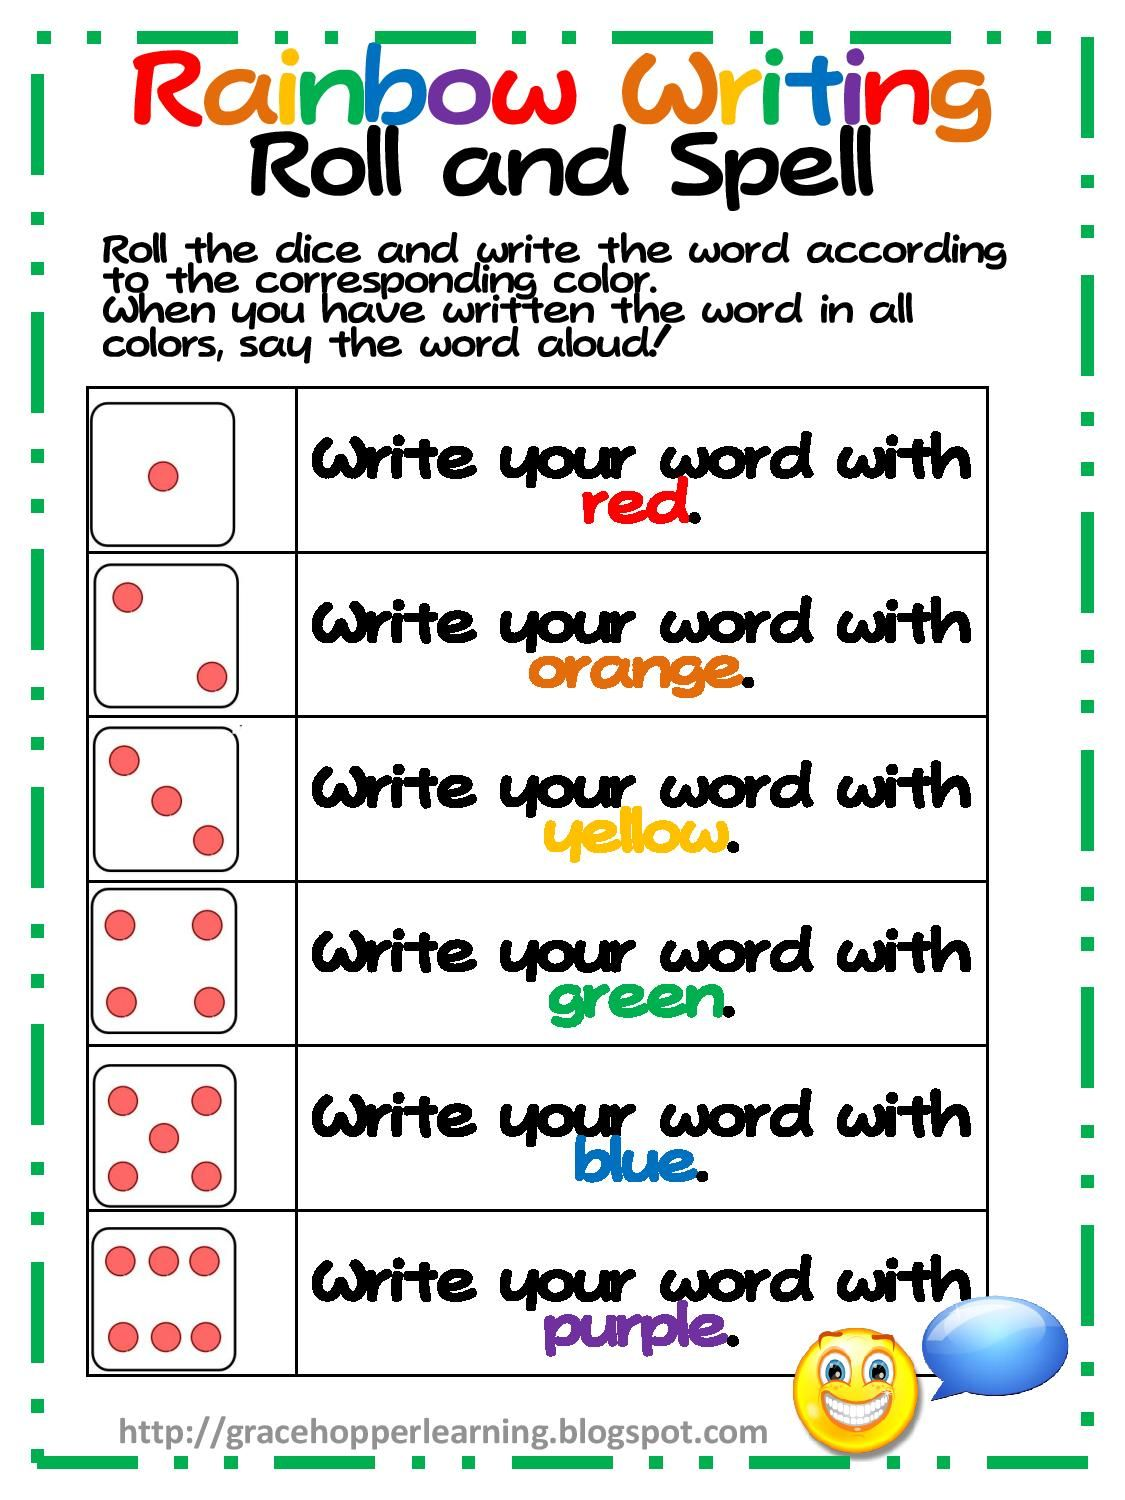 Rainbow Worksheets Get It Here Rainbow Writing Game